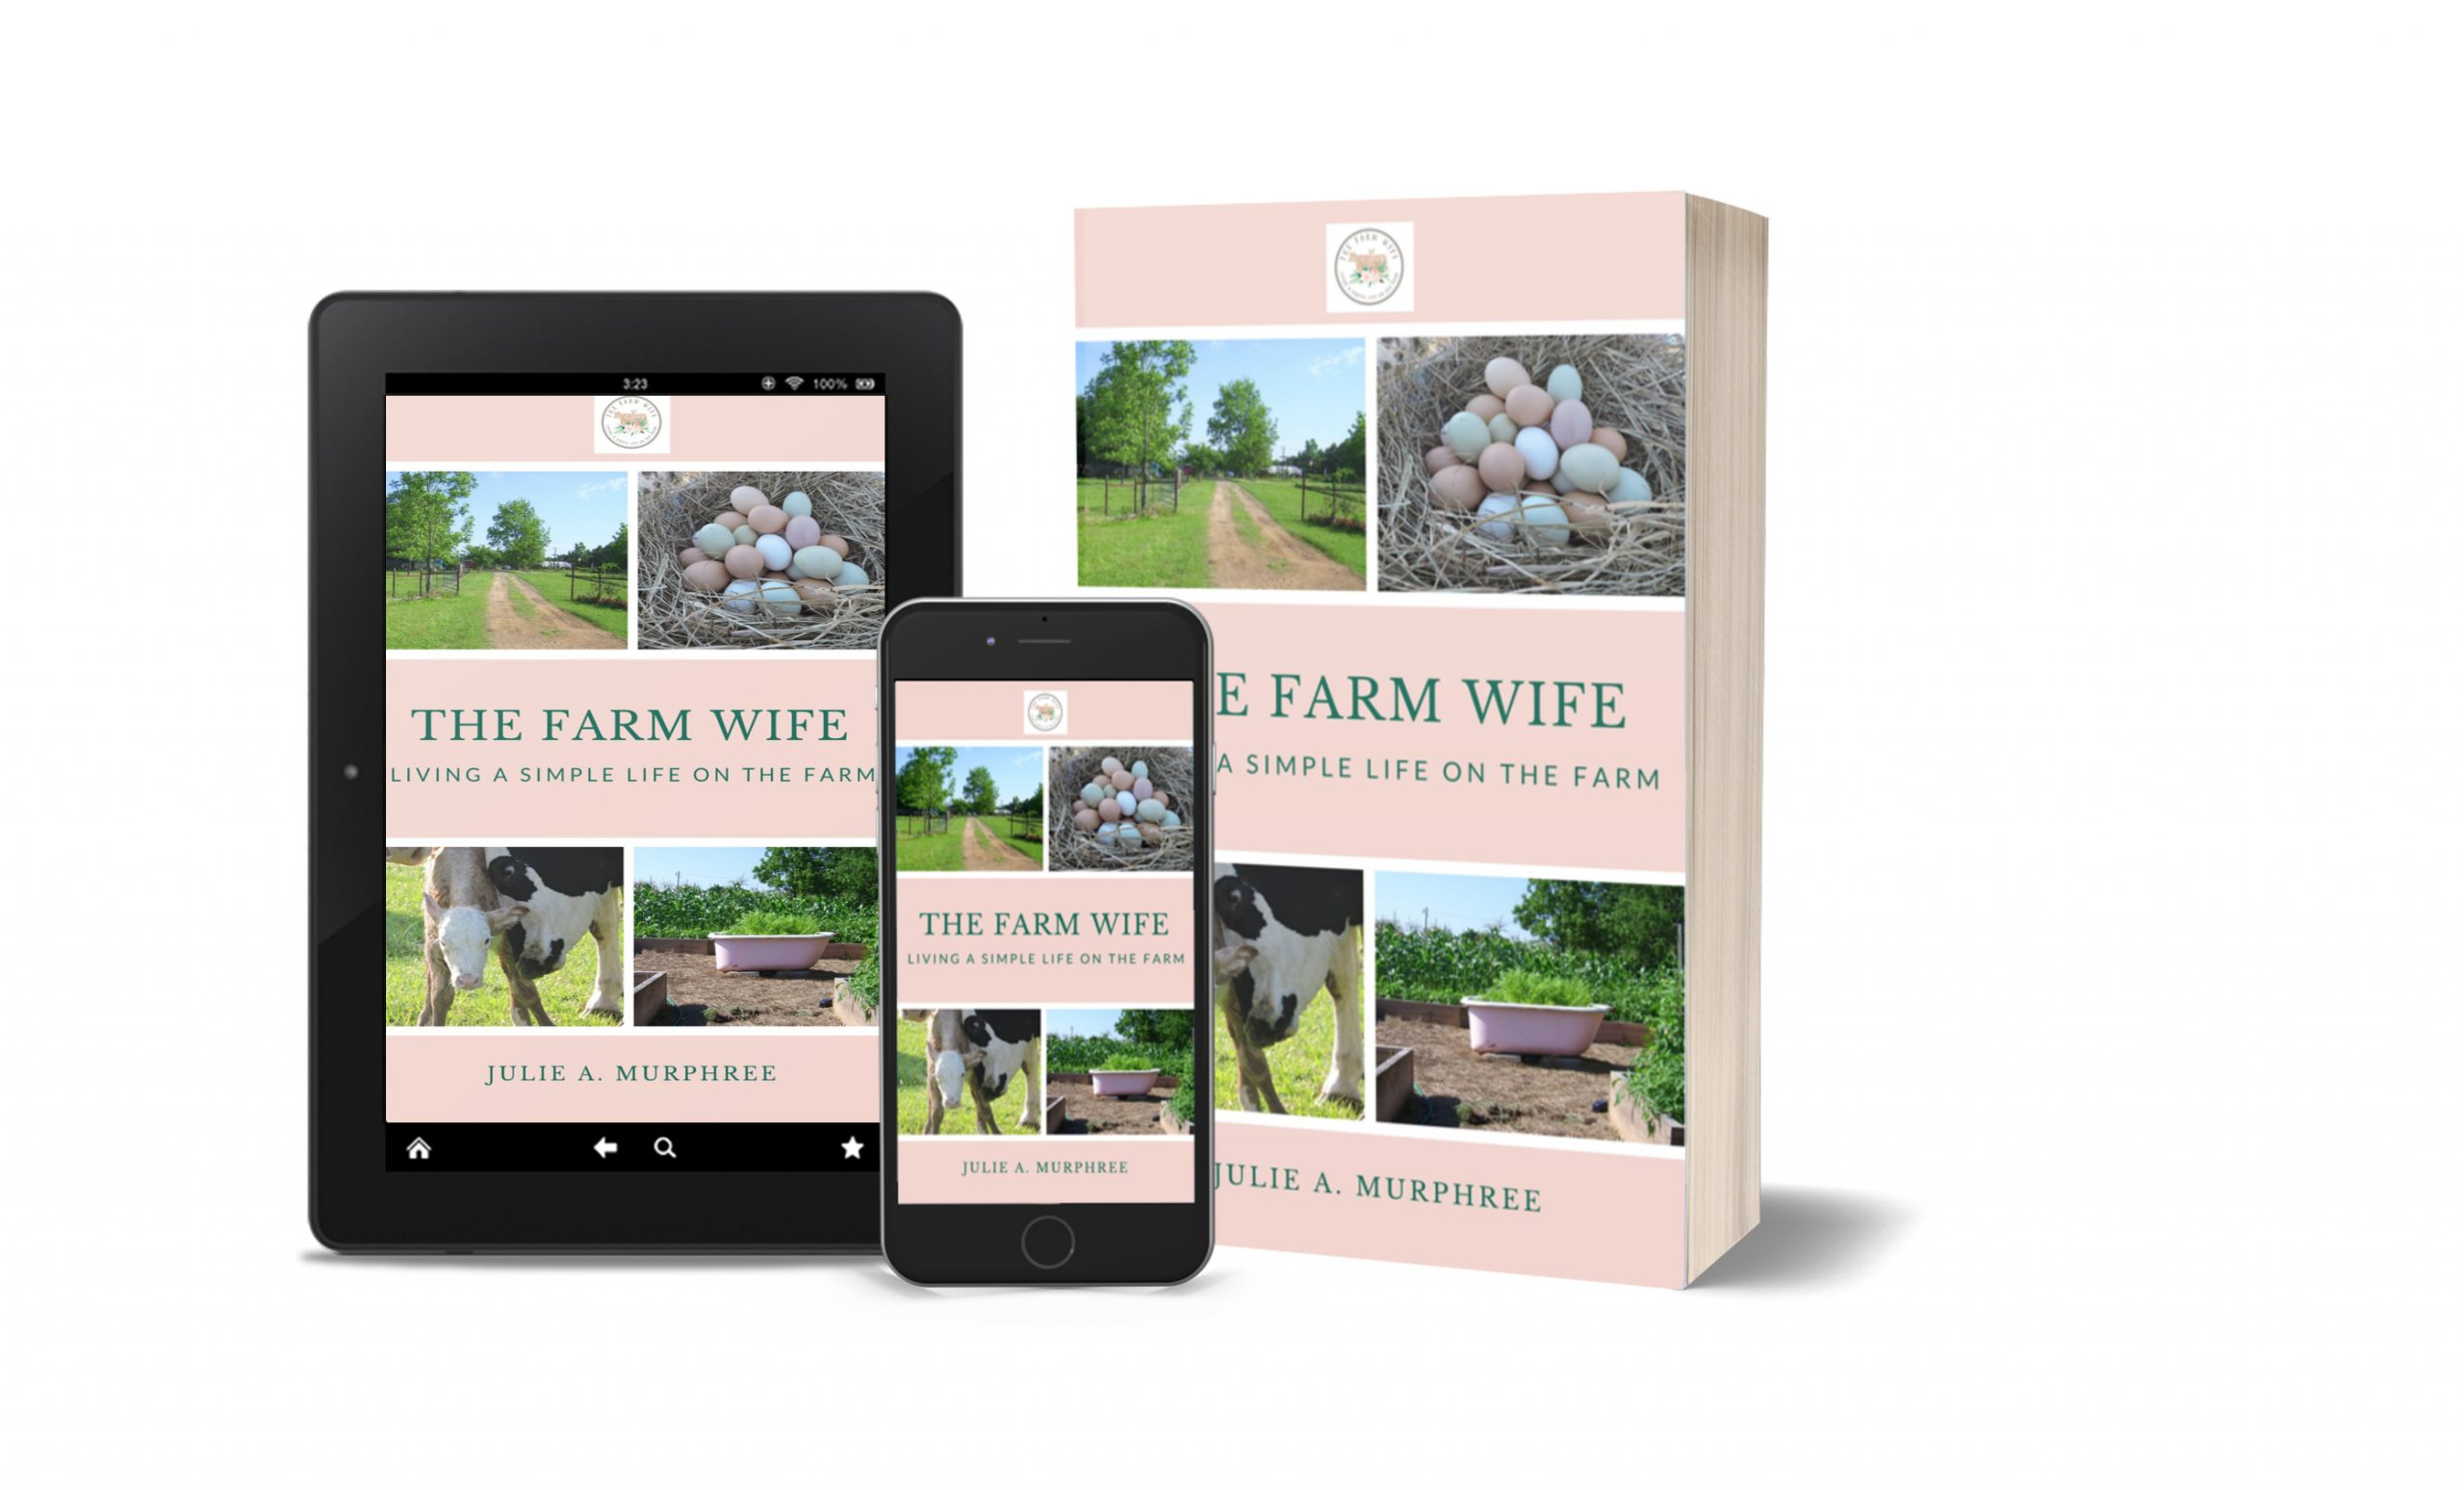 The Farm Wife Book